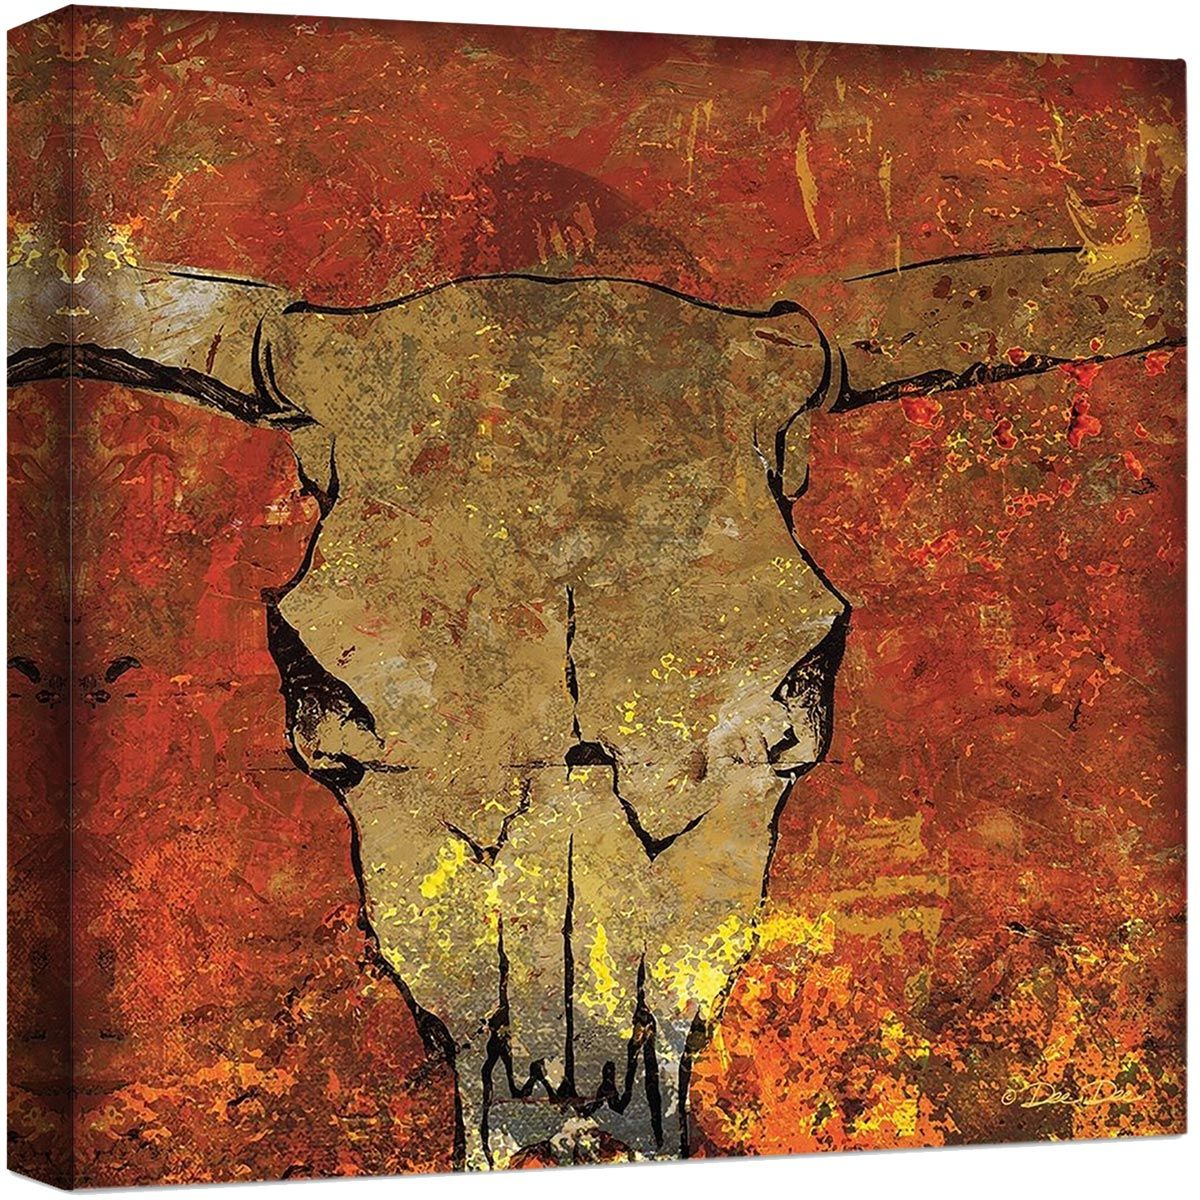 Blazing Skull Canvas Art